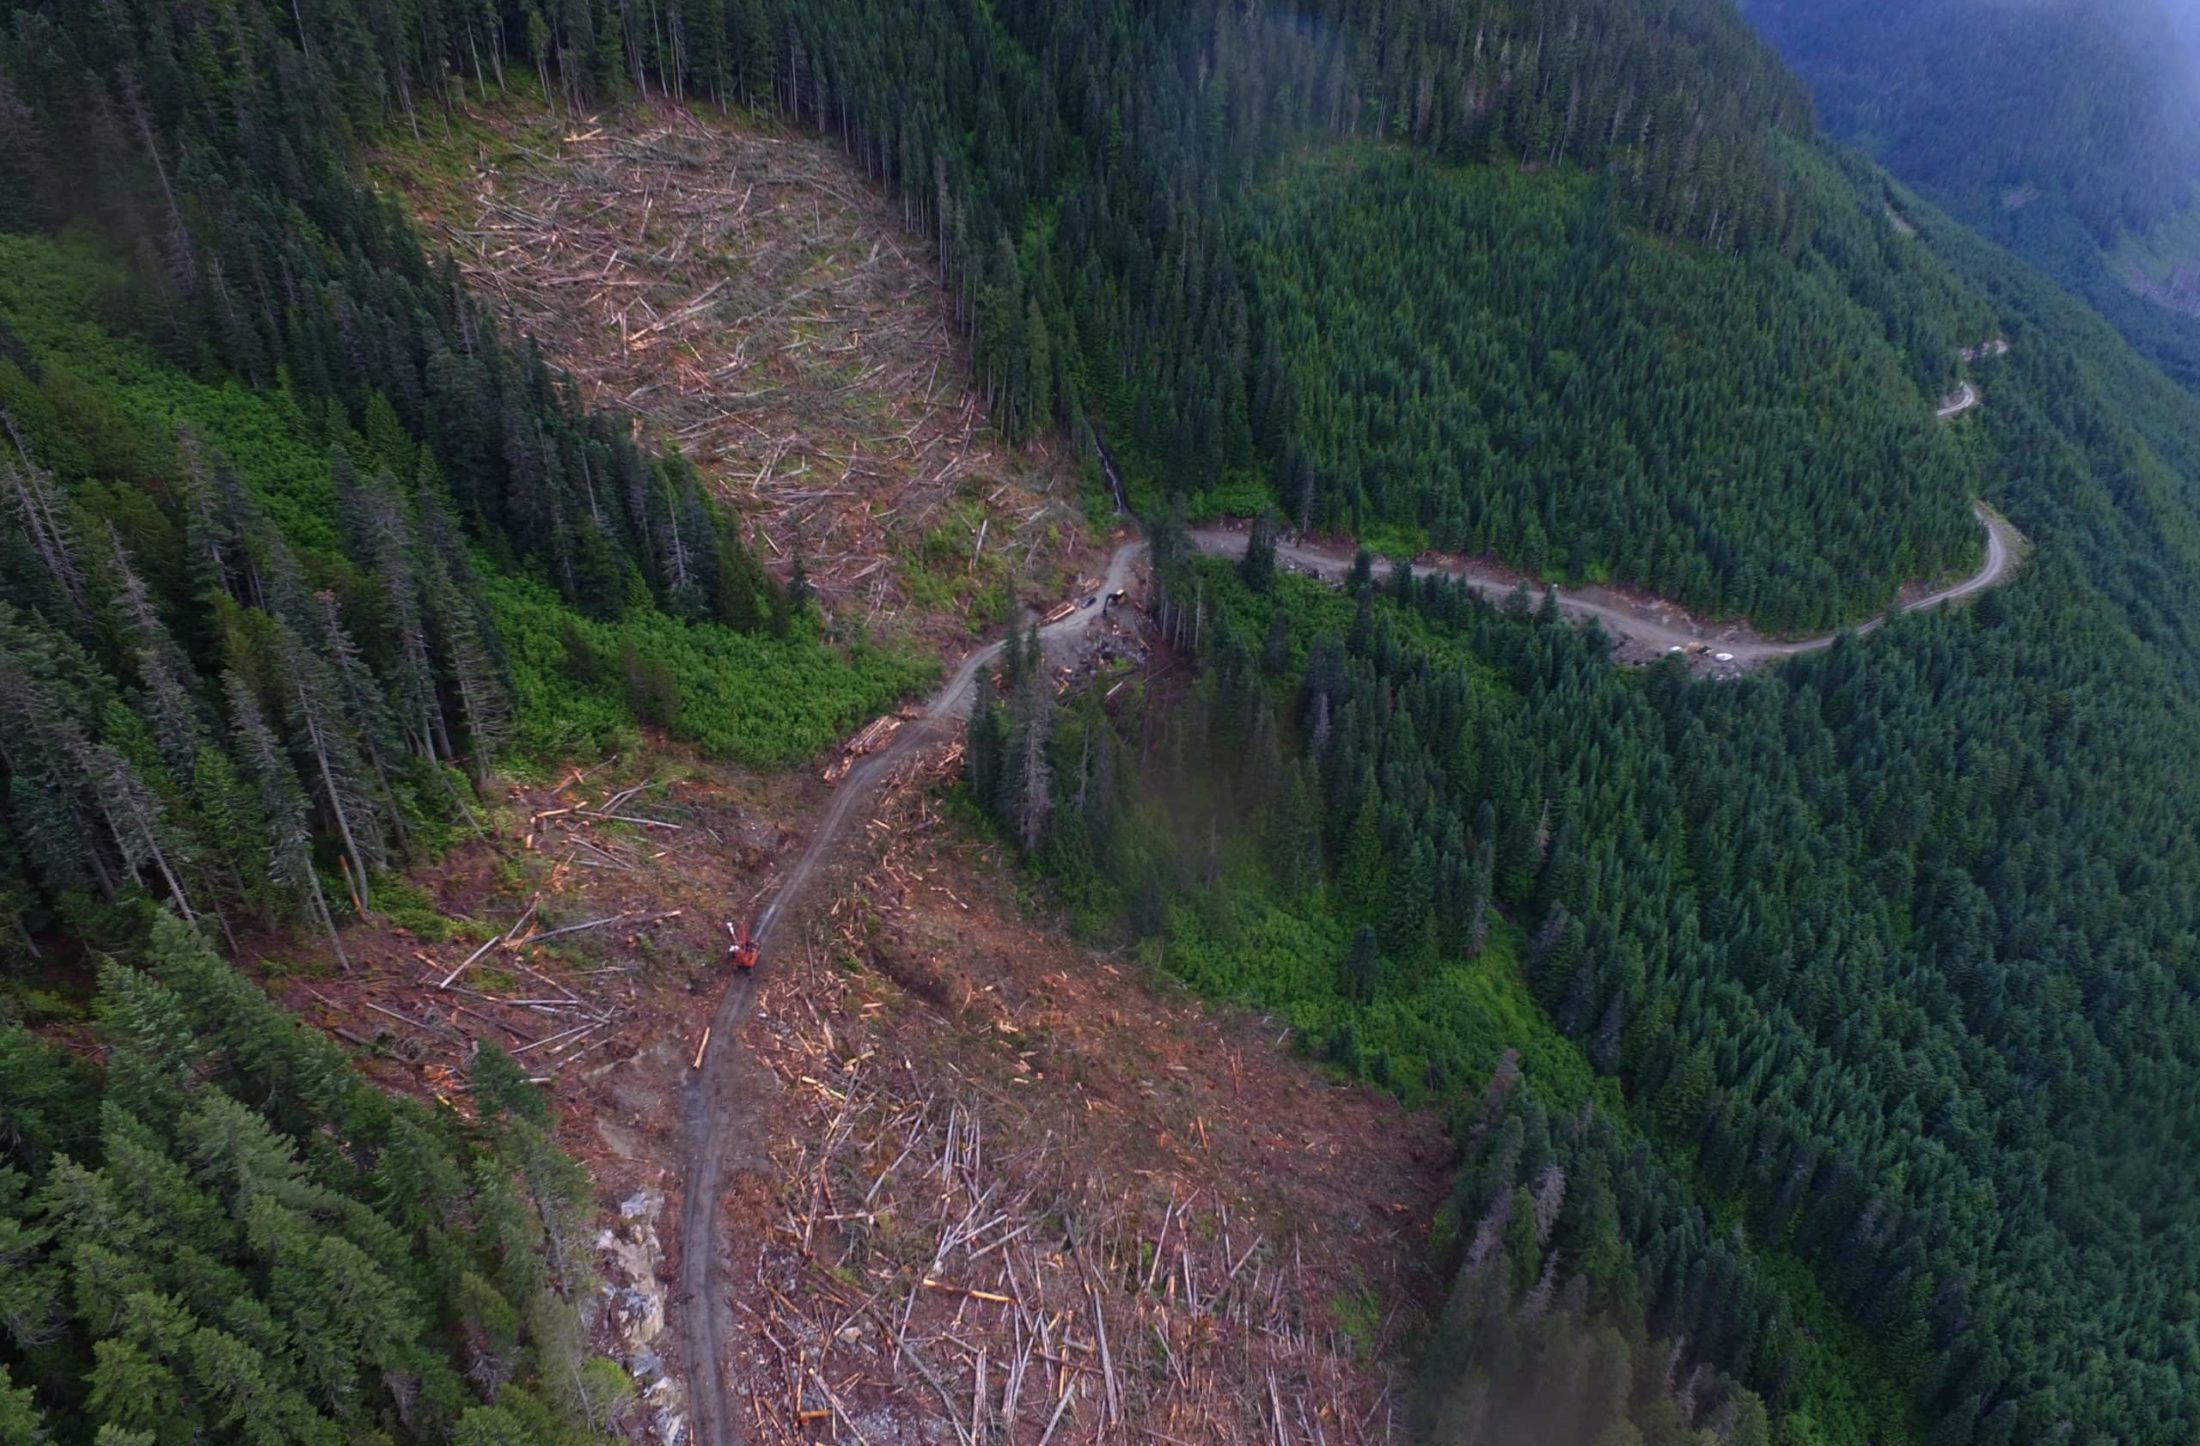 B.C. approves 312 new logging clearcuts in habitat of endangered spotted owls